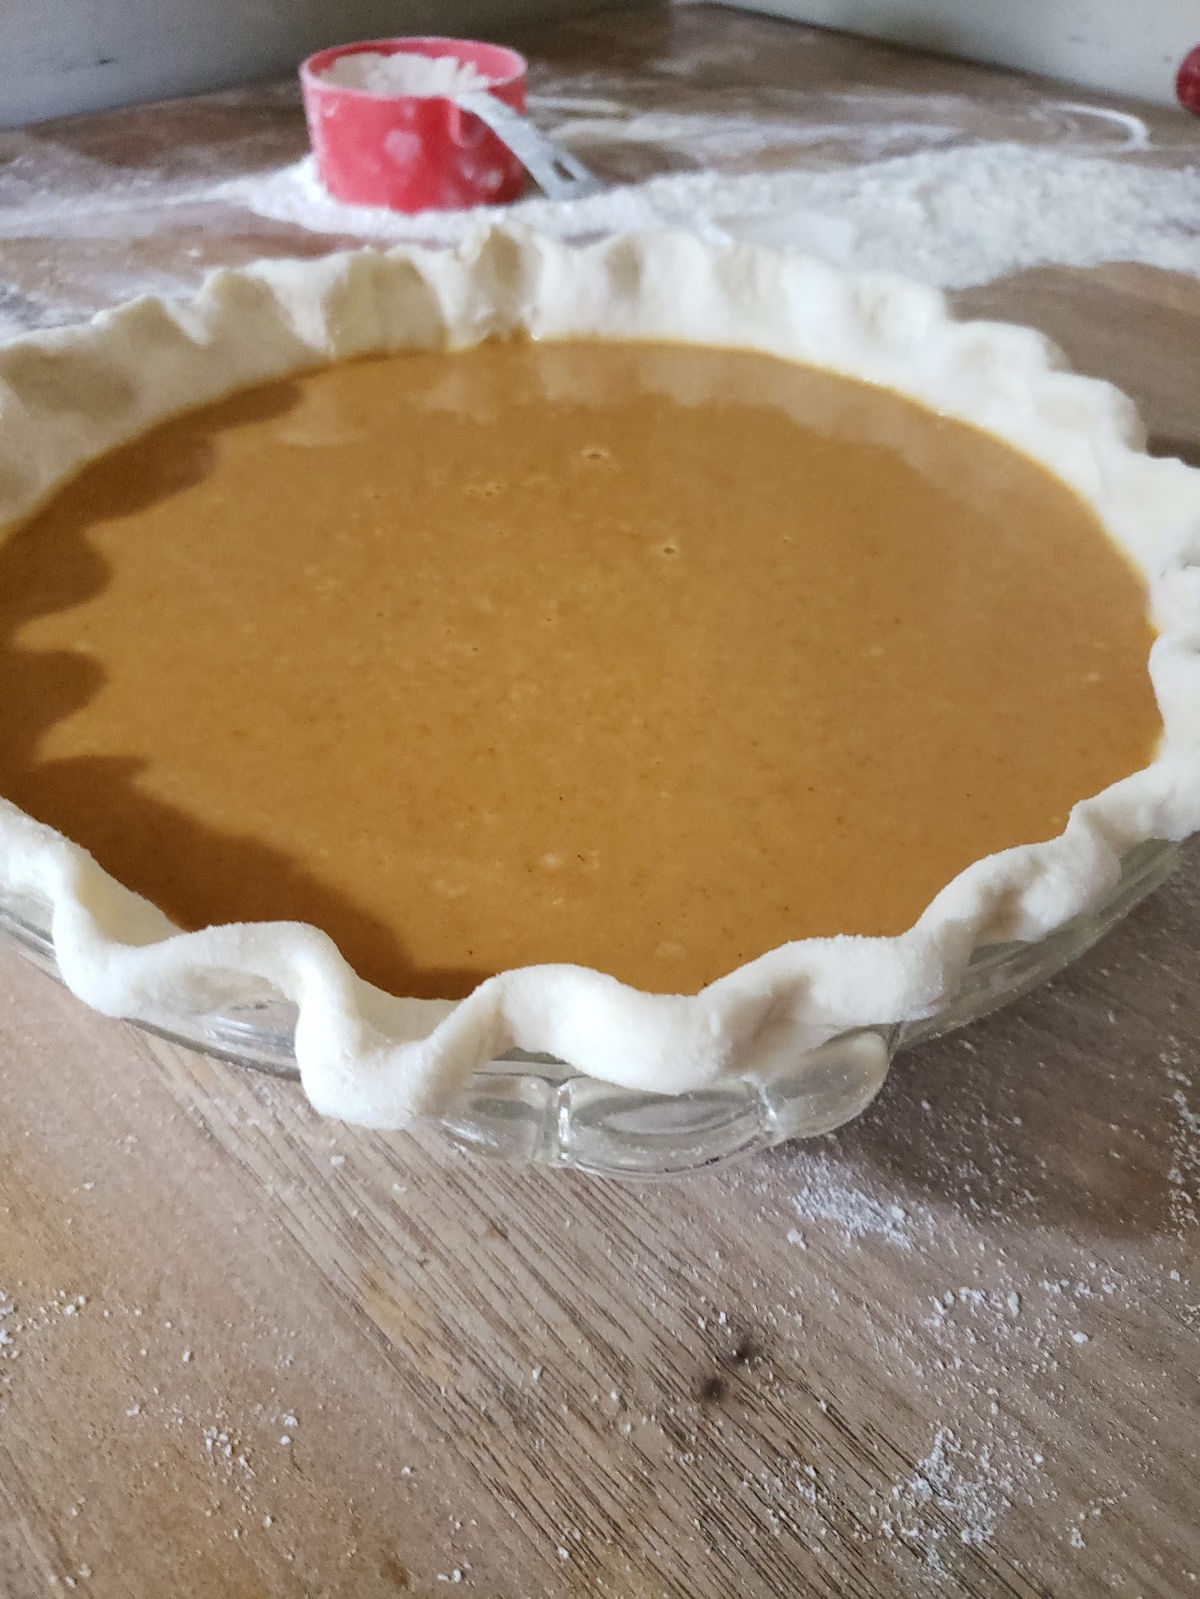 unbaked pumpkin pie on butcher block, red measuring cup with flour in background.